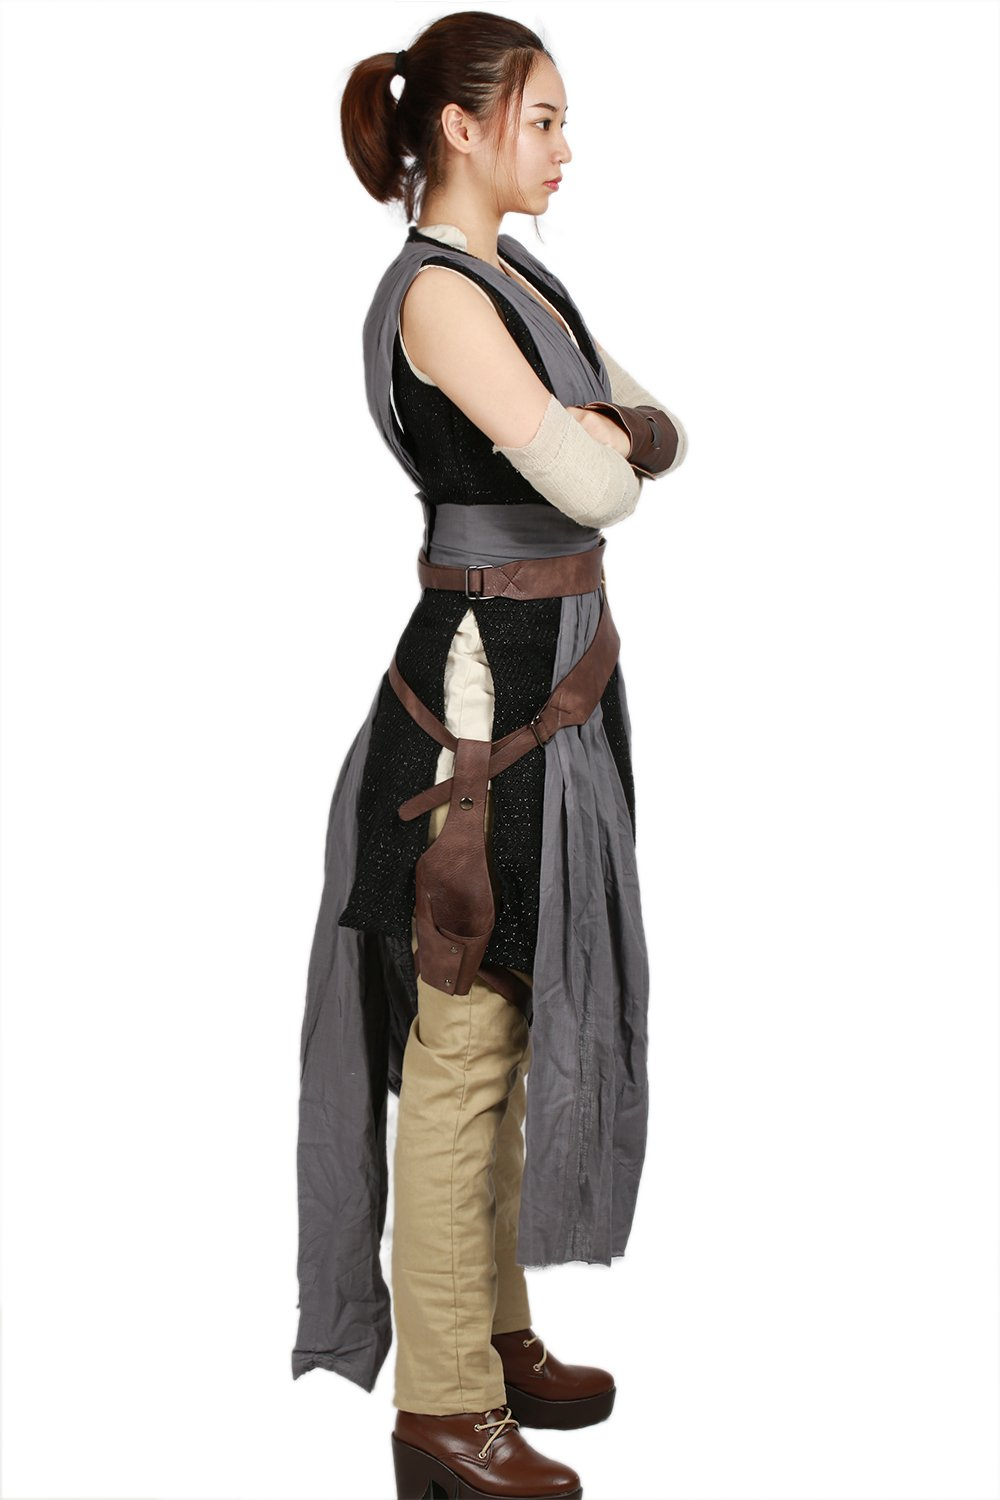 xcoser Rey Costume Deluxe Cool Full Set Tops Belt Tunic Movie Cosplay Women Outfit L by xcoser (Image #4)